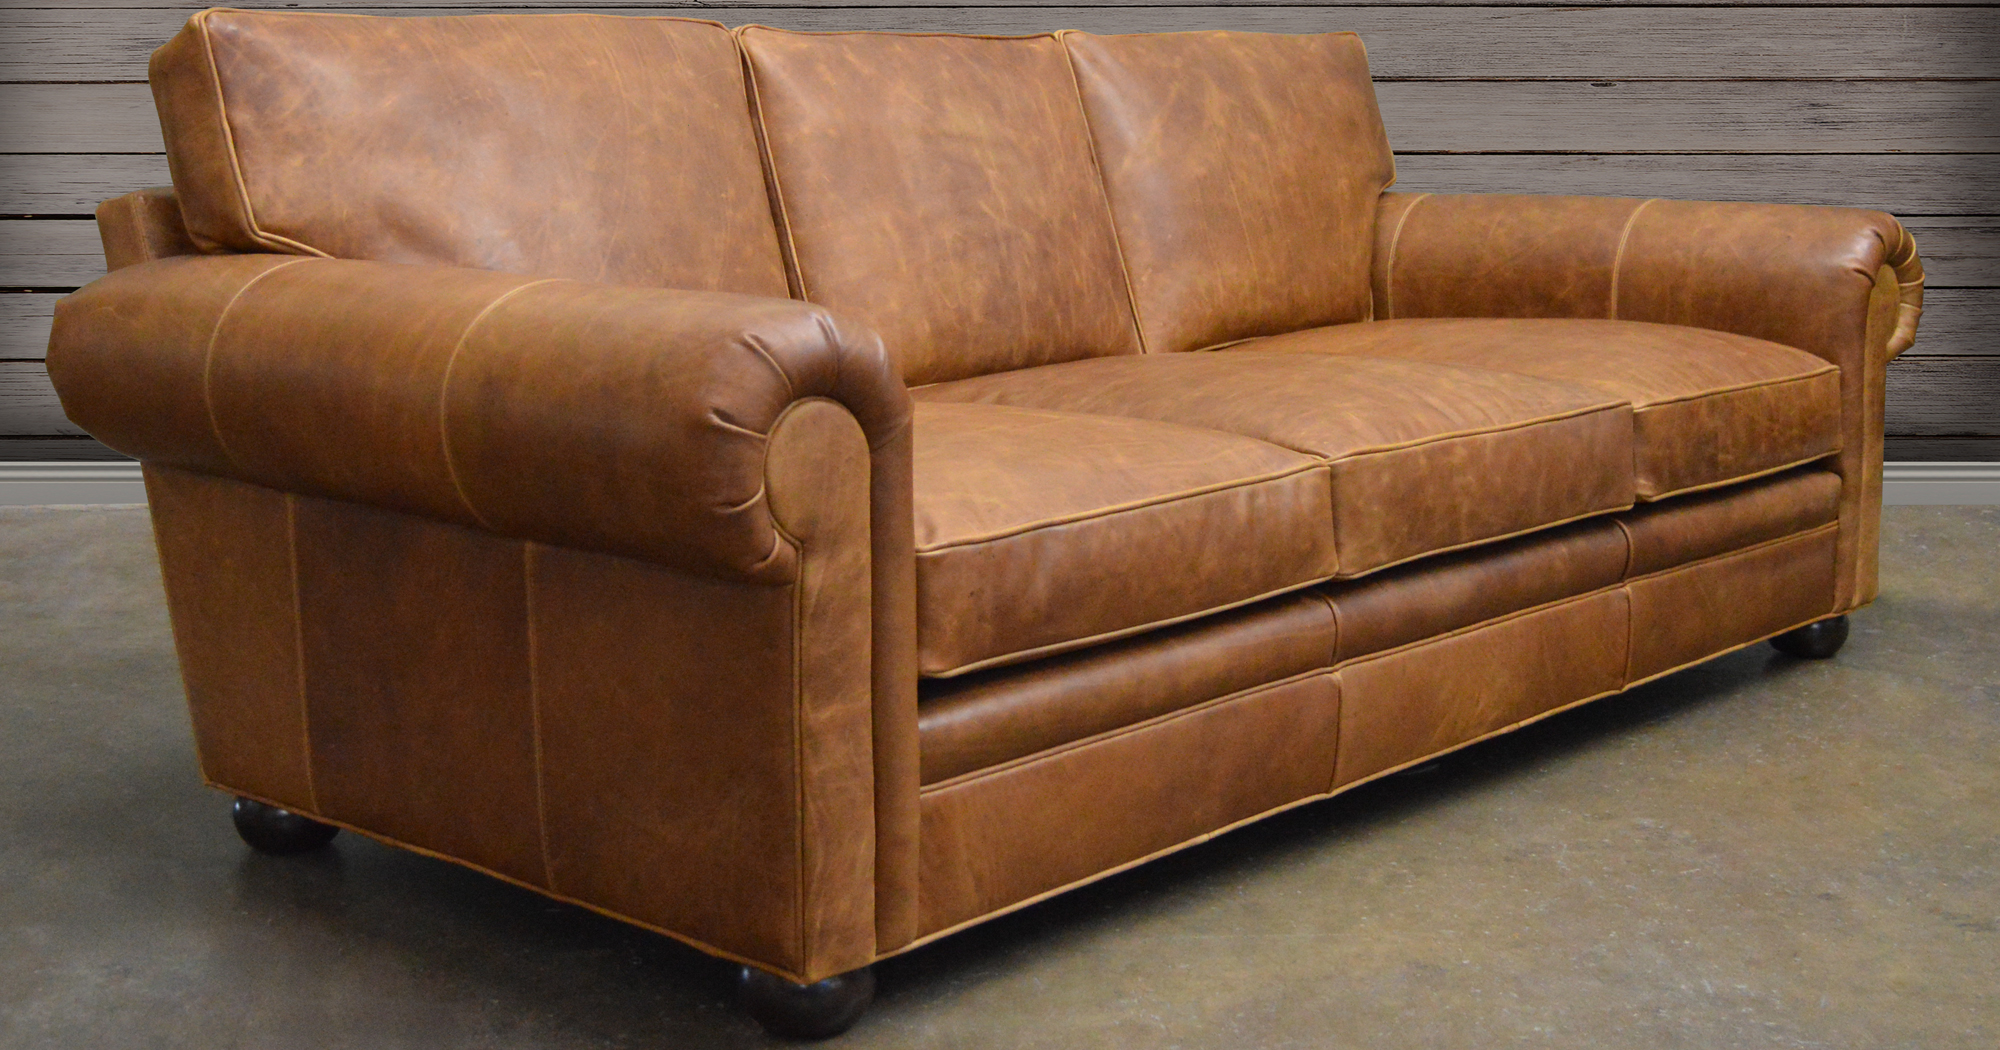 brentwood sofa modern sectional made in usa quality leather furniture craftsmanship leathergroups